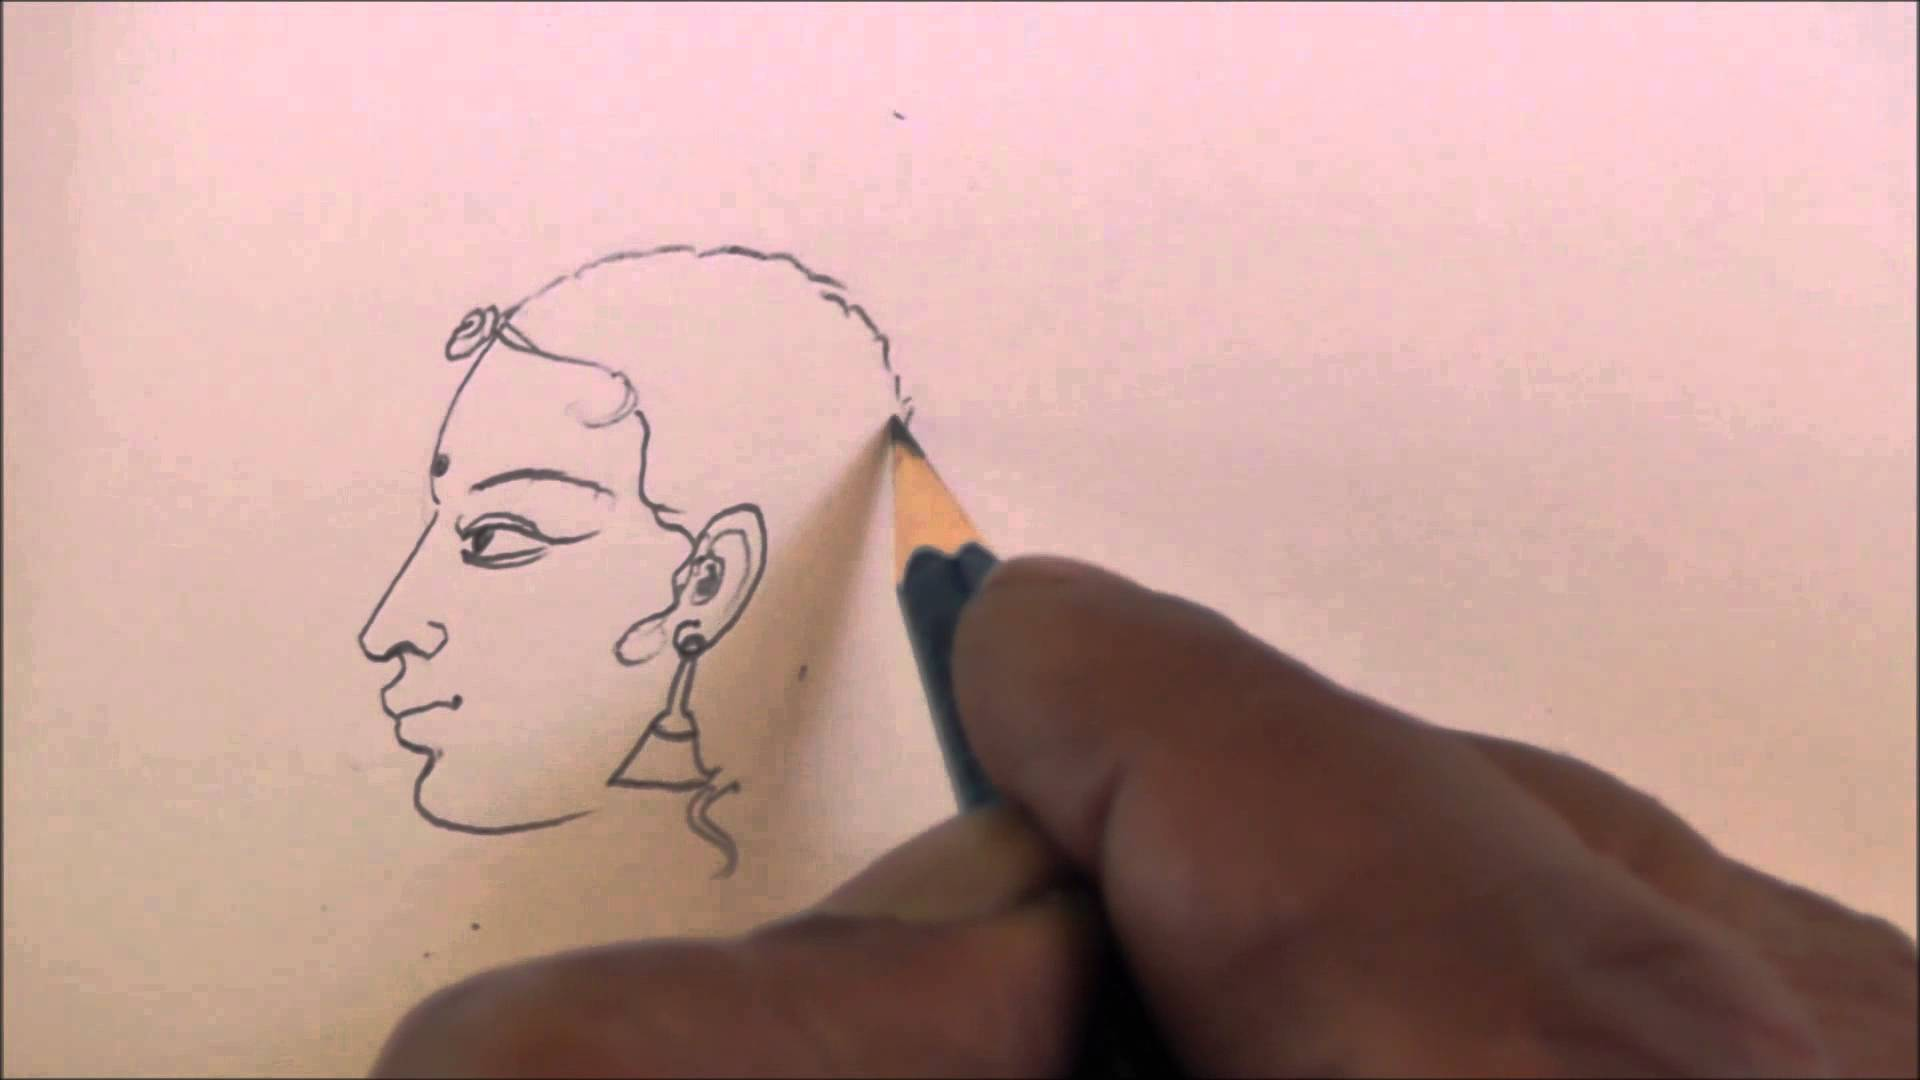 1920x1080 How To Draw Hand Free Sketch Of Women Face Youtube Measure Vinyl